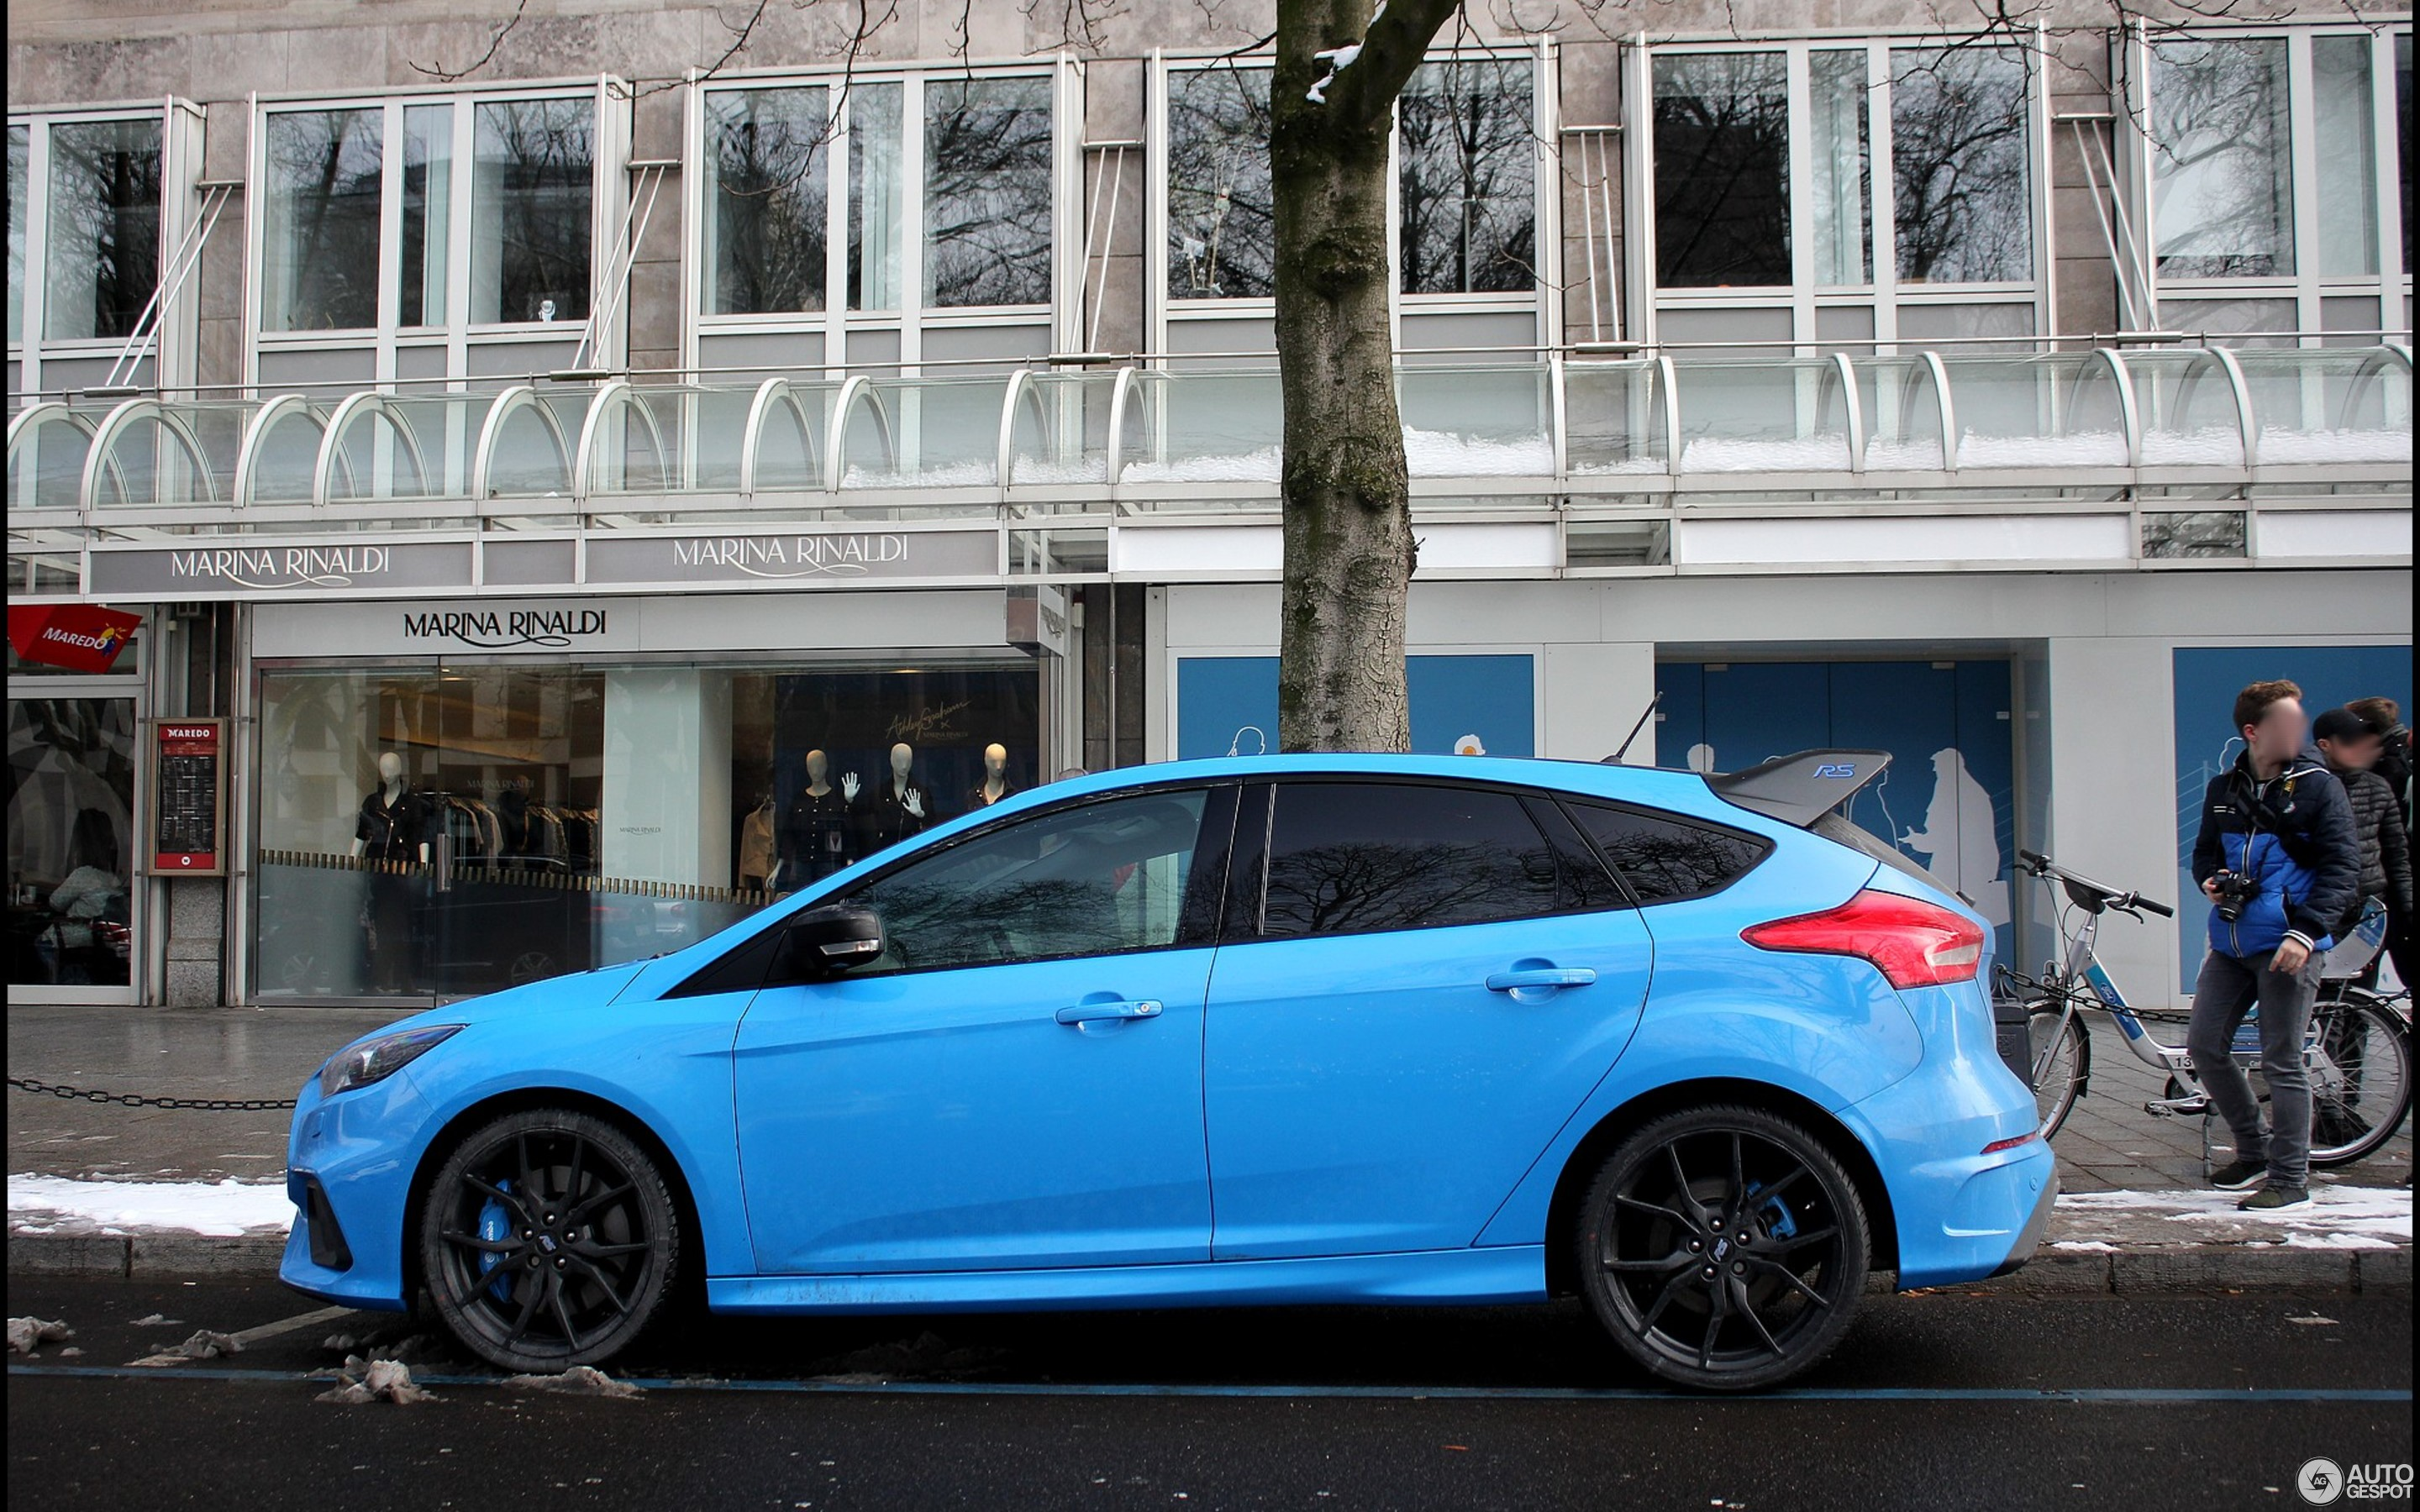 Ford Focus RS Performance Limited Edition 2018 - 3 March 2018 ... on 2006 ford limited edition, ford focus new york, ford cougar limited edition, ford focus elite, ford focus star wars, 2004 ford limited edition, ford focus gl, ford fusion limited edition, ford focus home, ford f-350 limited edition, ford focus profile, ford taurus limited edition, ford sport trac limited edition, ford focus neon, ford focus anniversary, ford focus xe, ford focus xlt, ford focus women, ford focus illustration, ford five hundred awd limited edition,